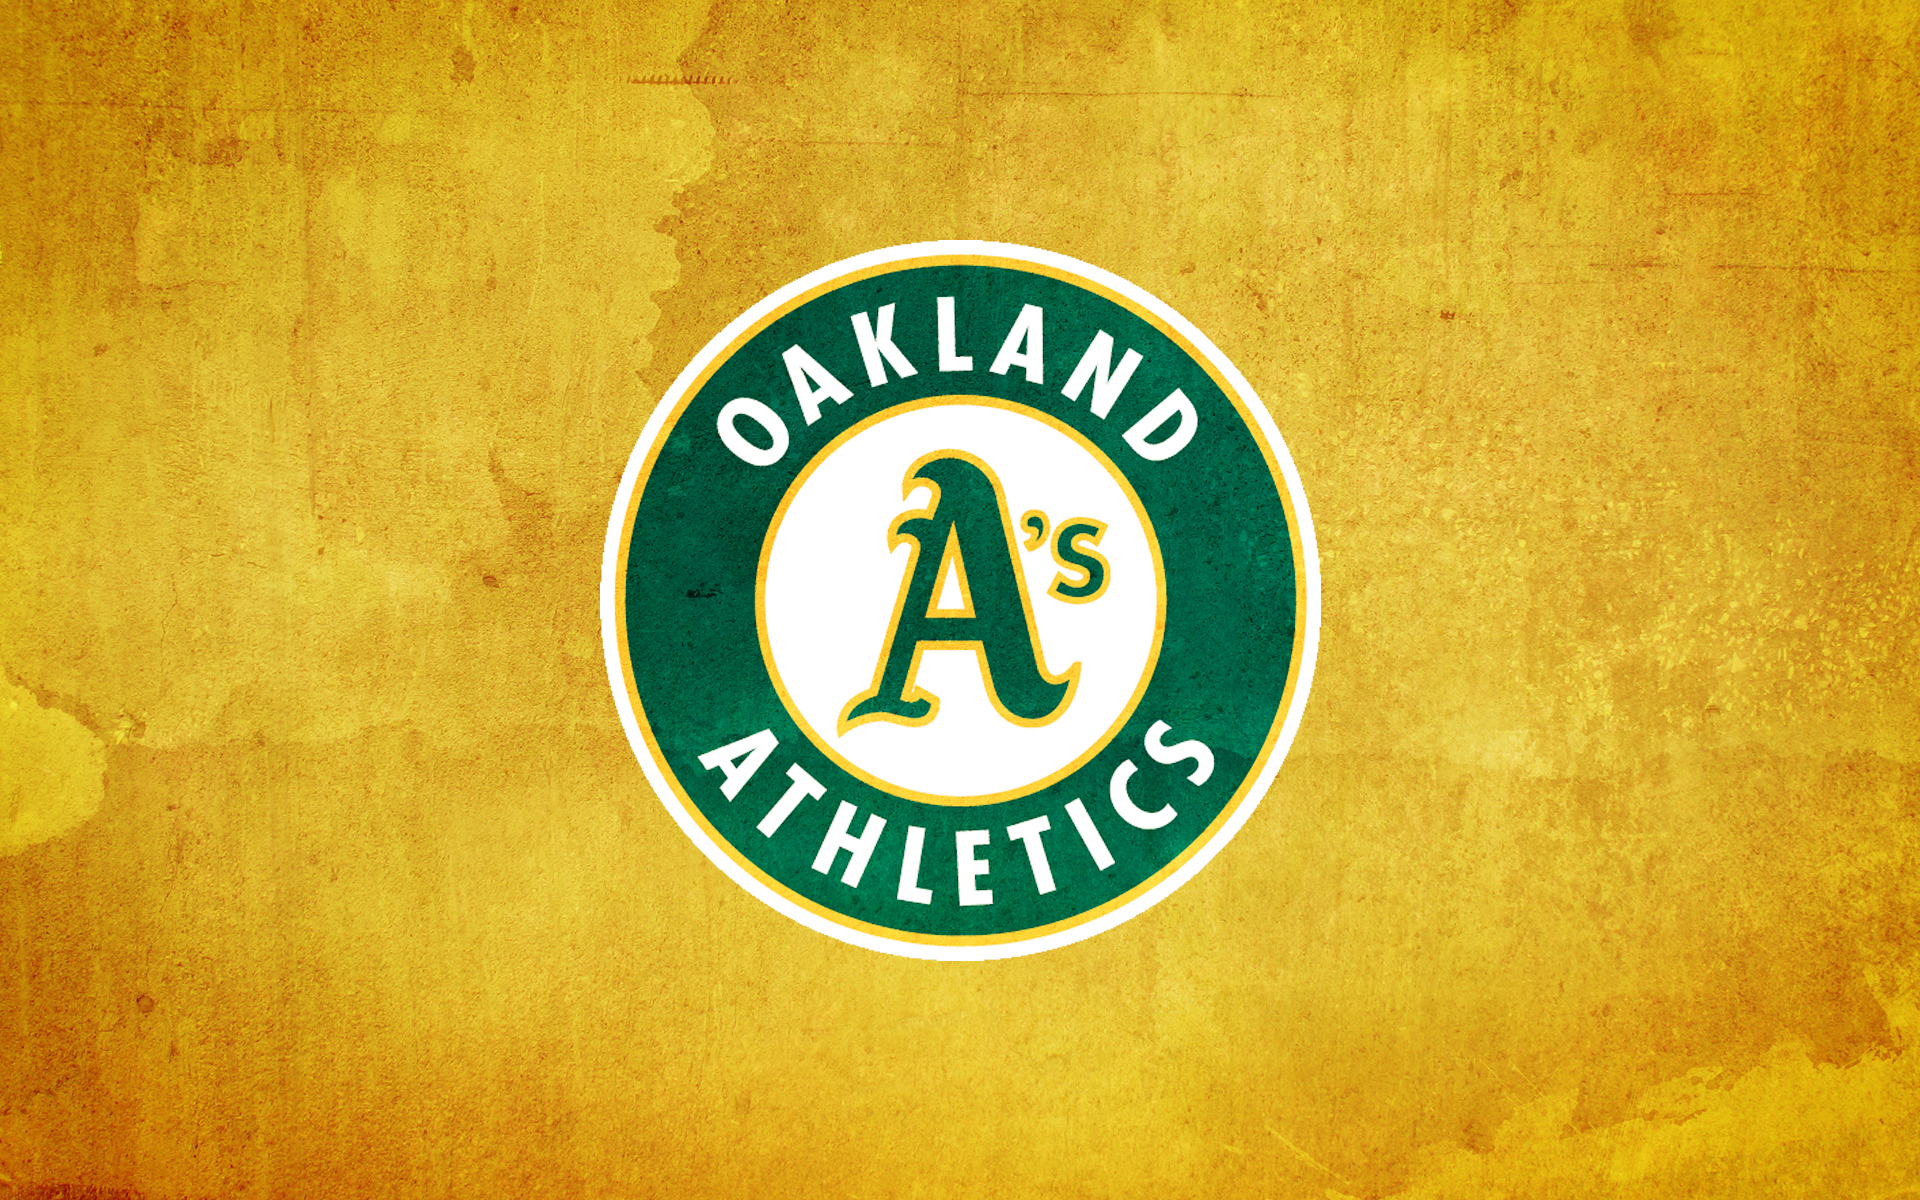 Oakland Athletics Wallpaper 3   1920 X 1200 stmednet 1920x1200